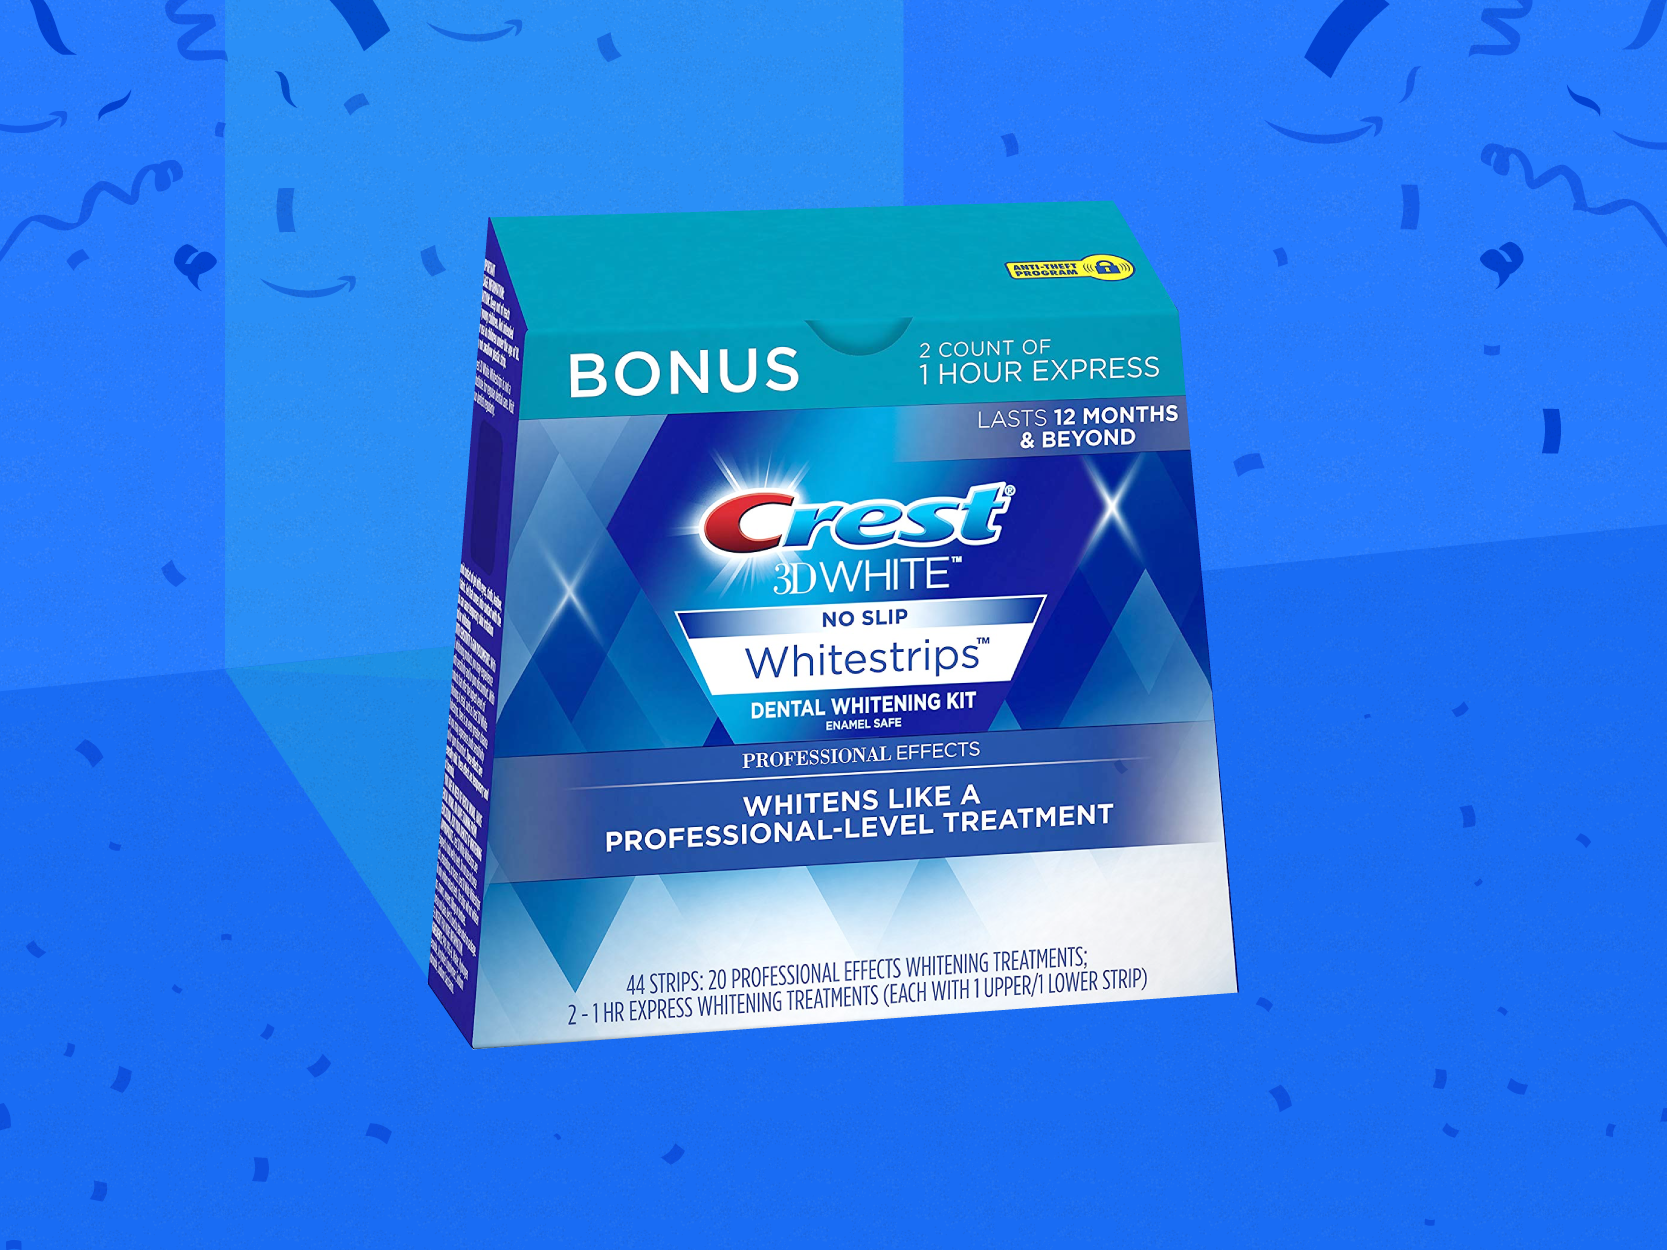 Crest Whitestrips are on major sale at nearly half off for Prime Day 2021